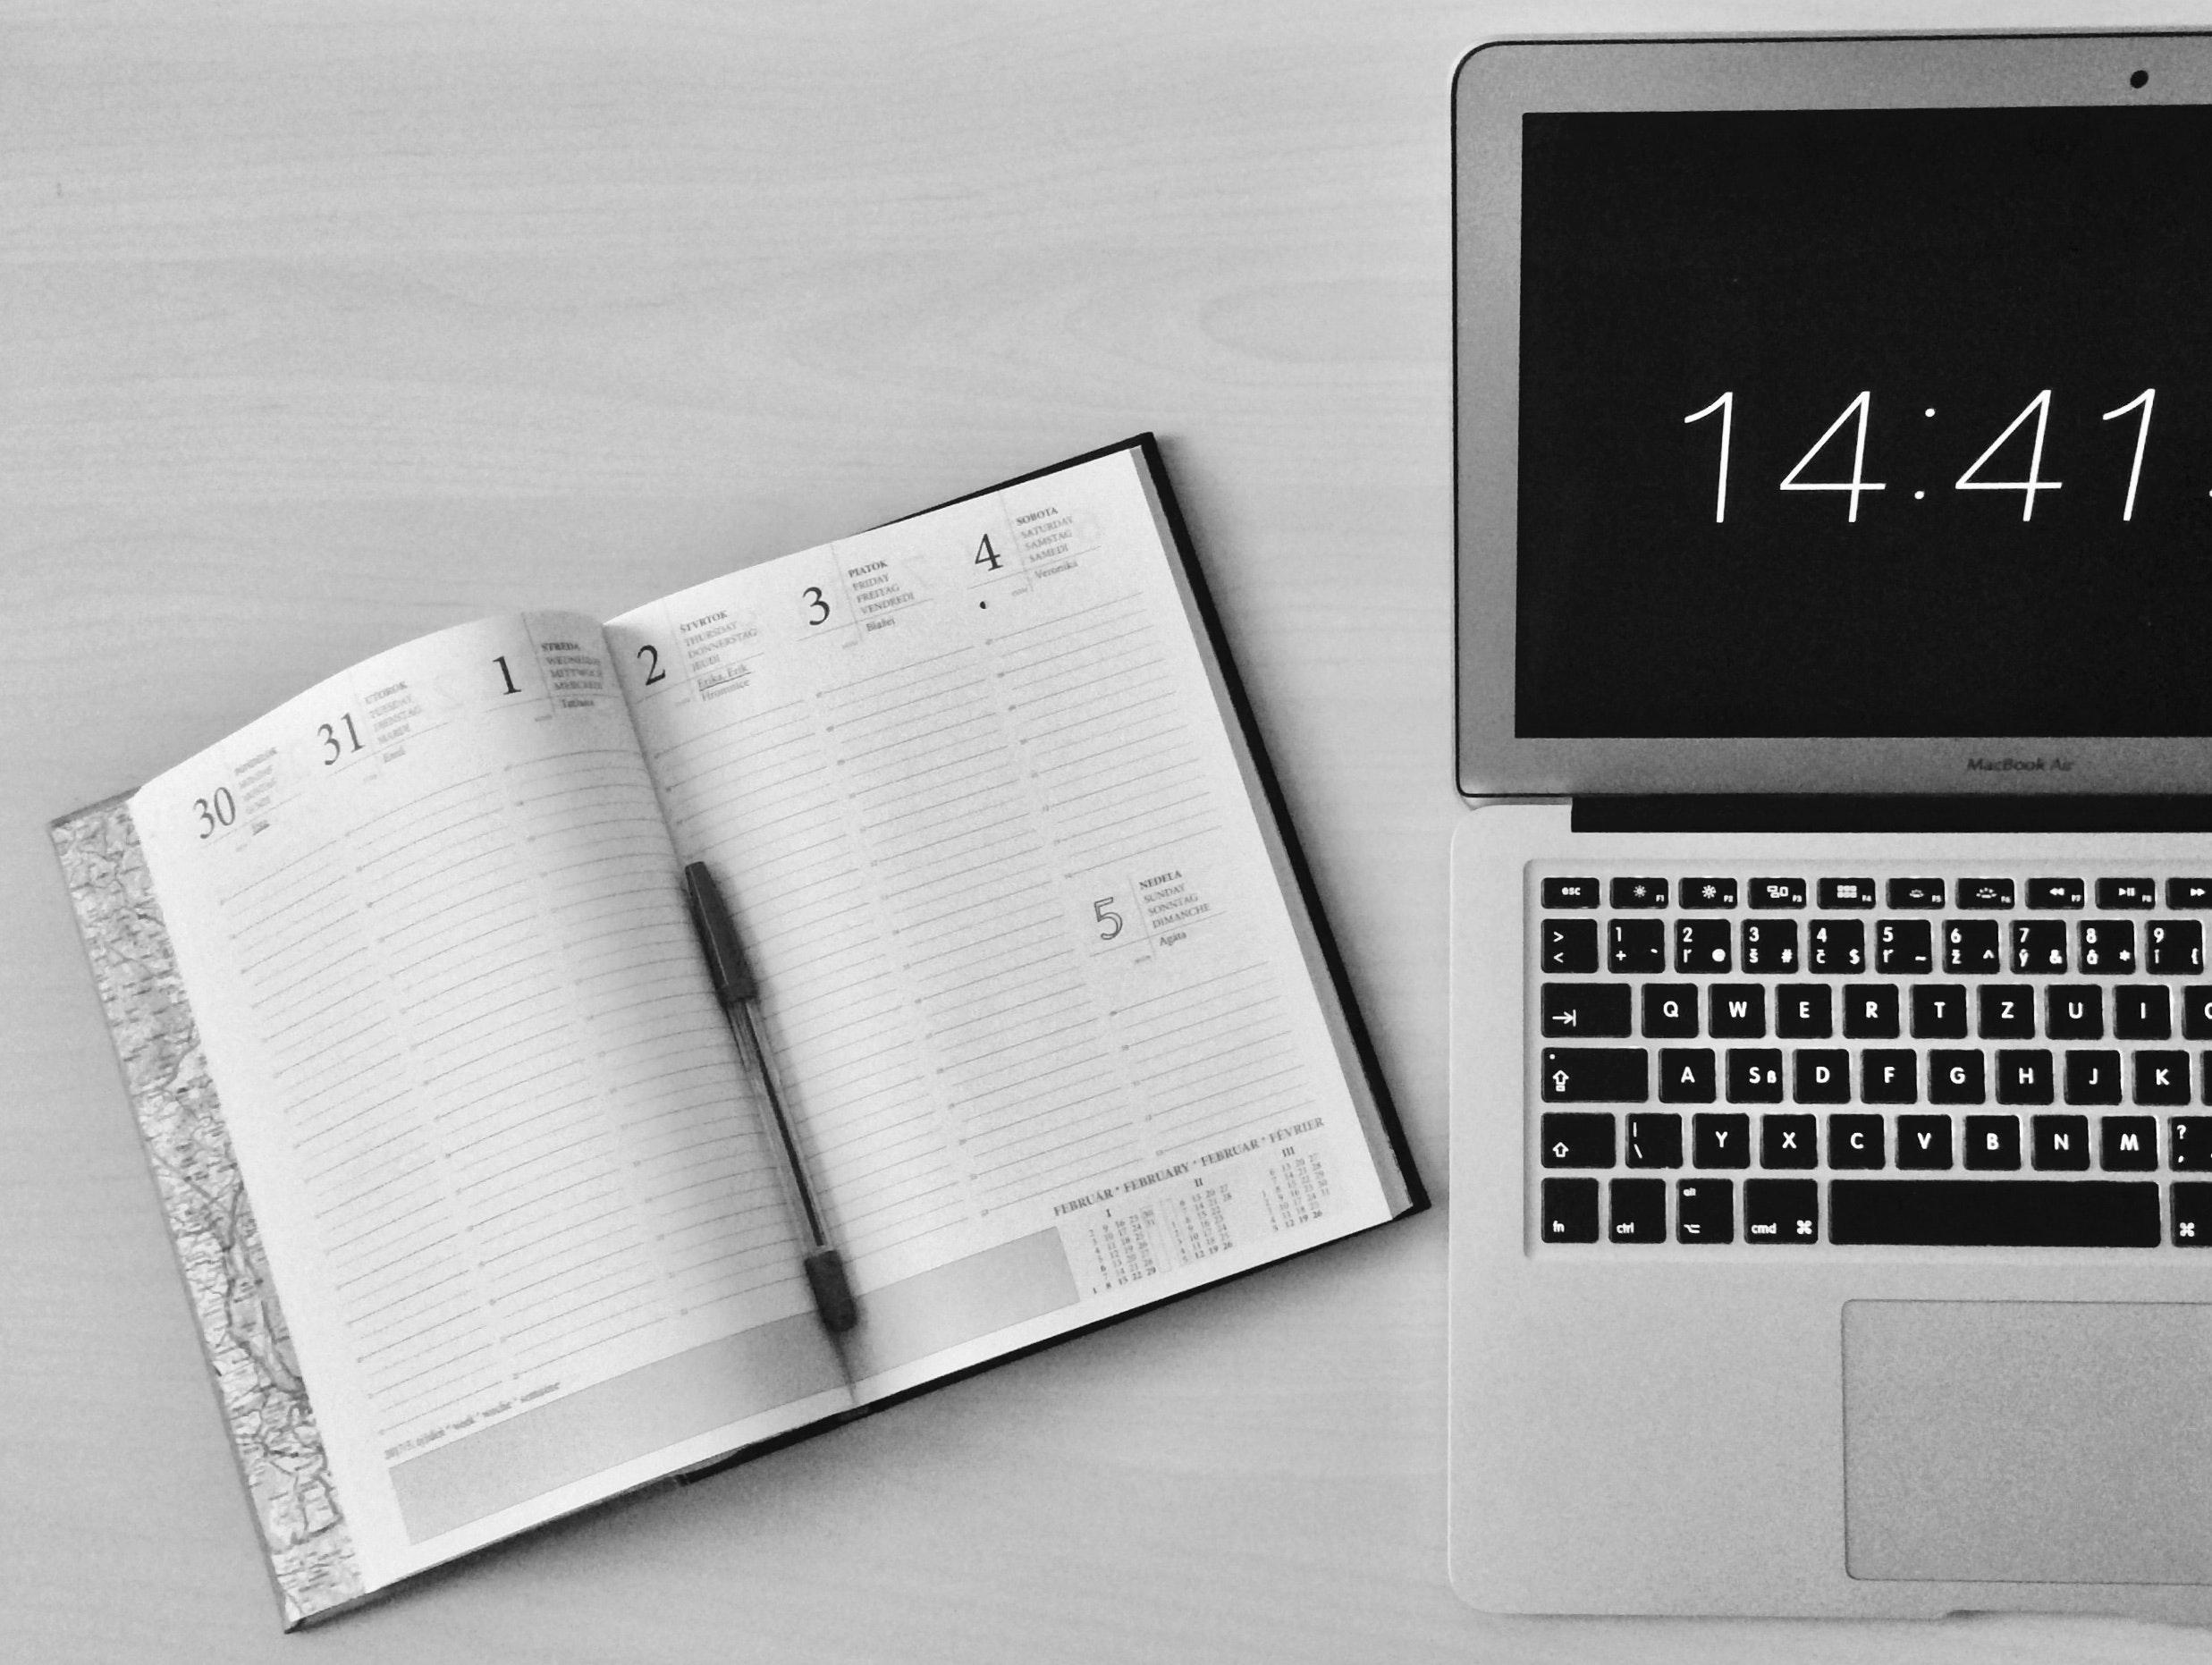 Time Management Tools for Remote Workers in 2021